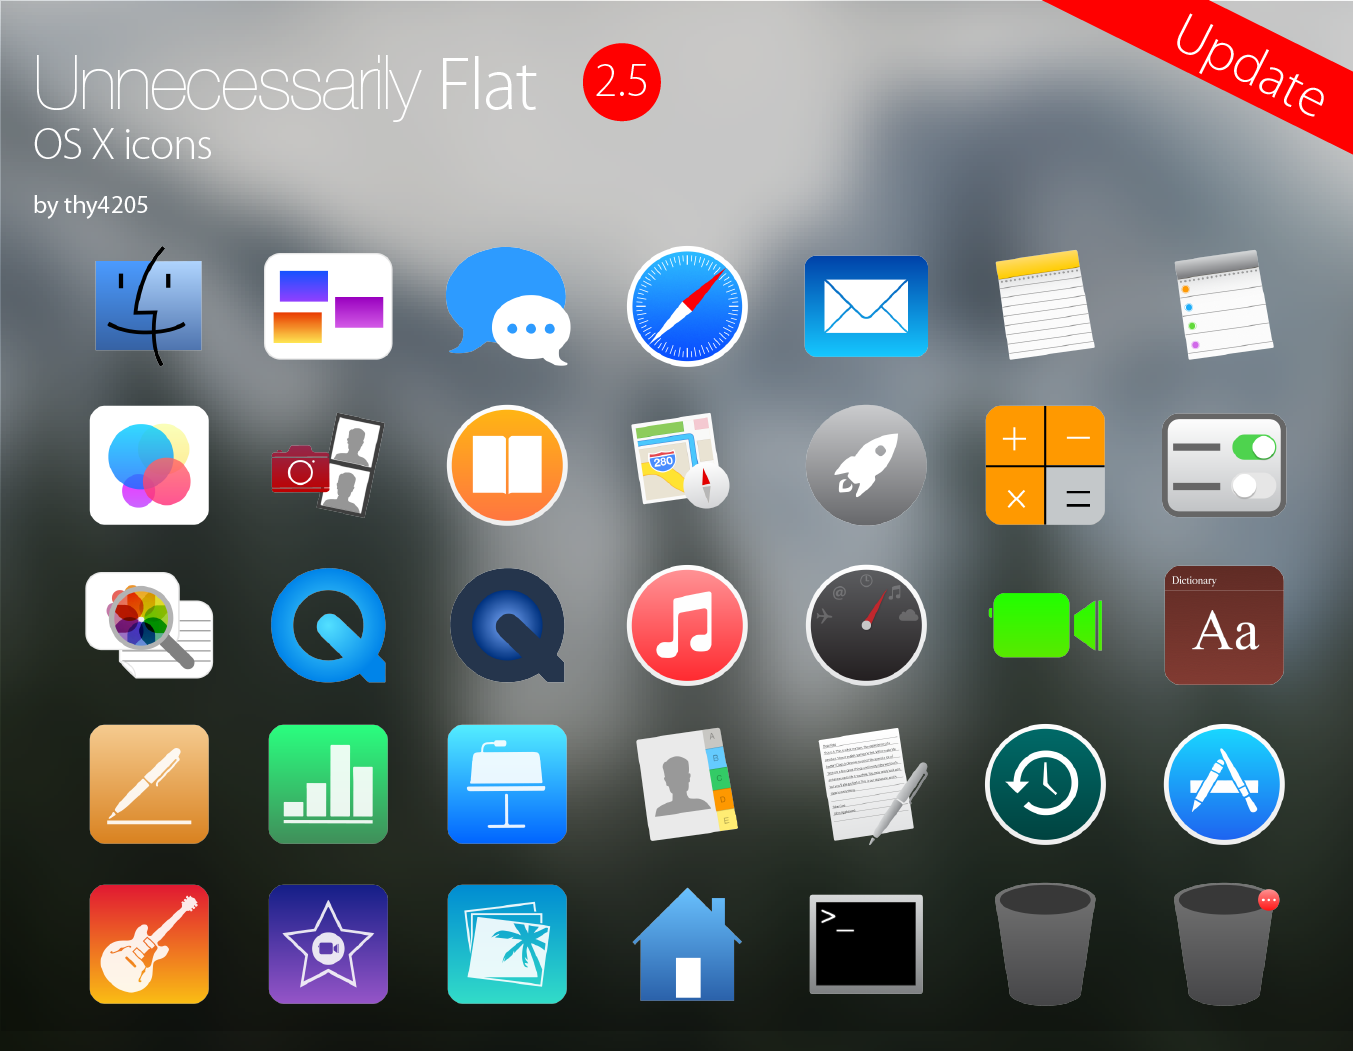 Unnecessarily Flat v2.5 icon set